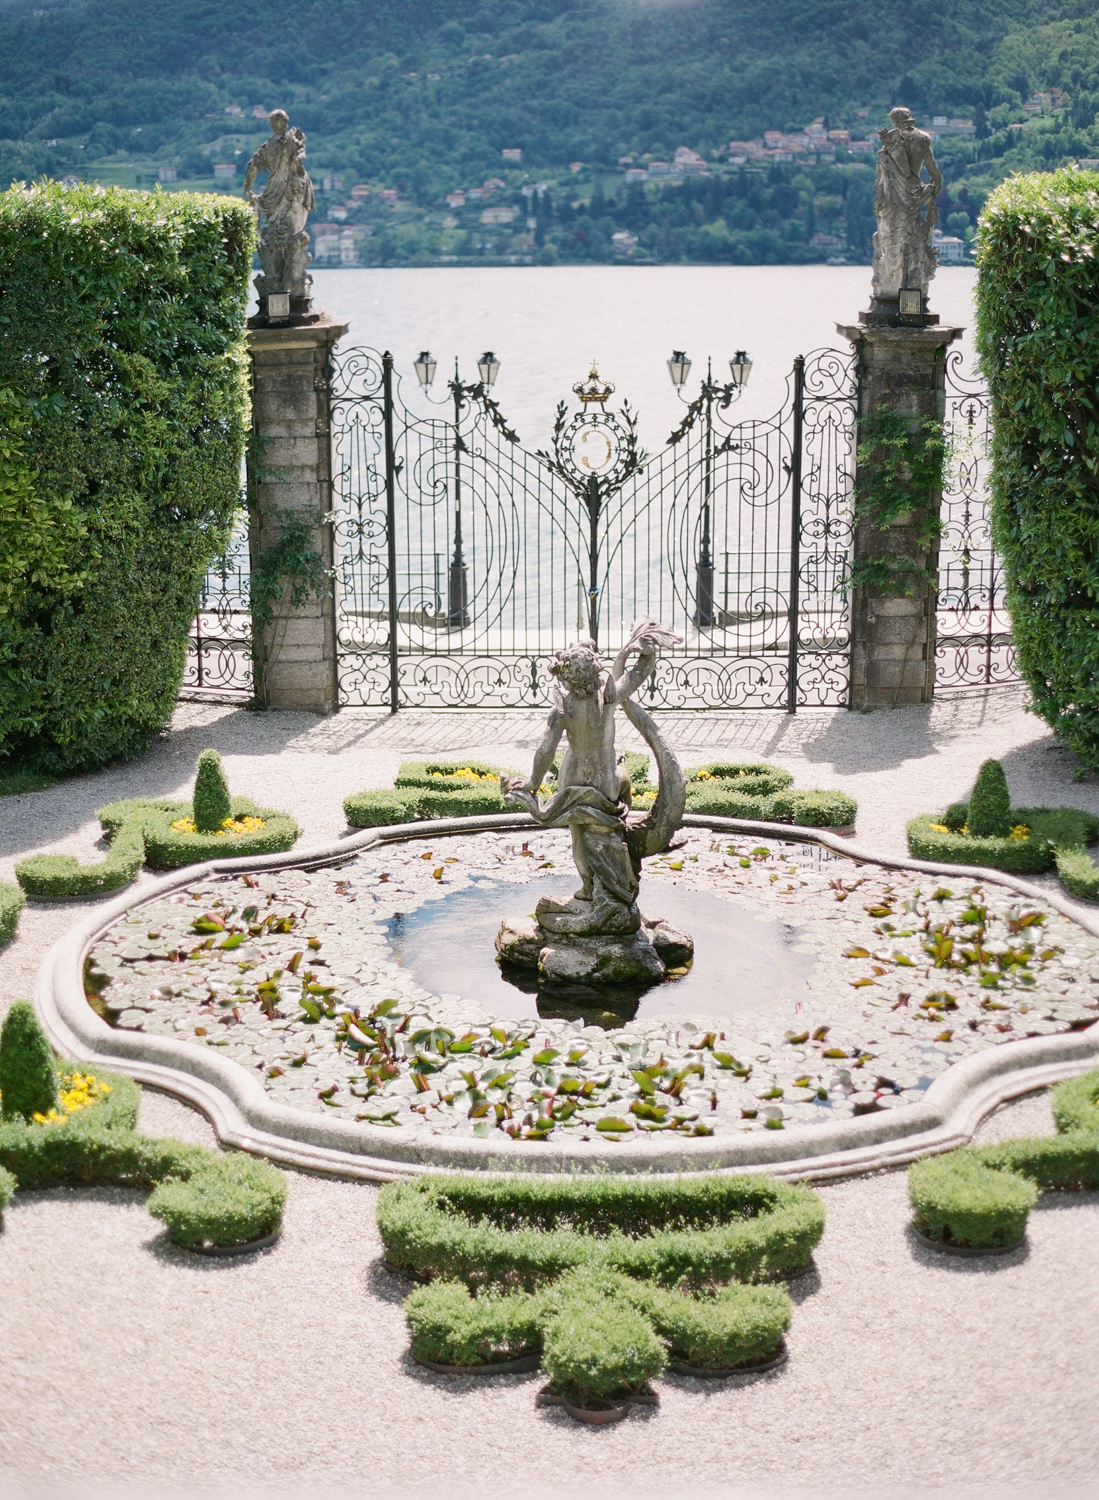 lake como film wedding photographer italy wedding photographer nikol bodnarova photography 02.JPG